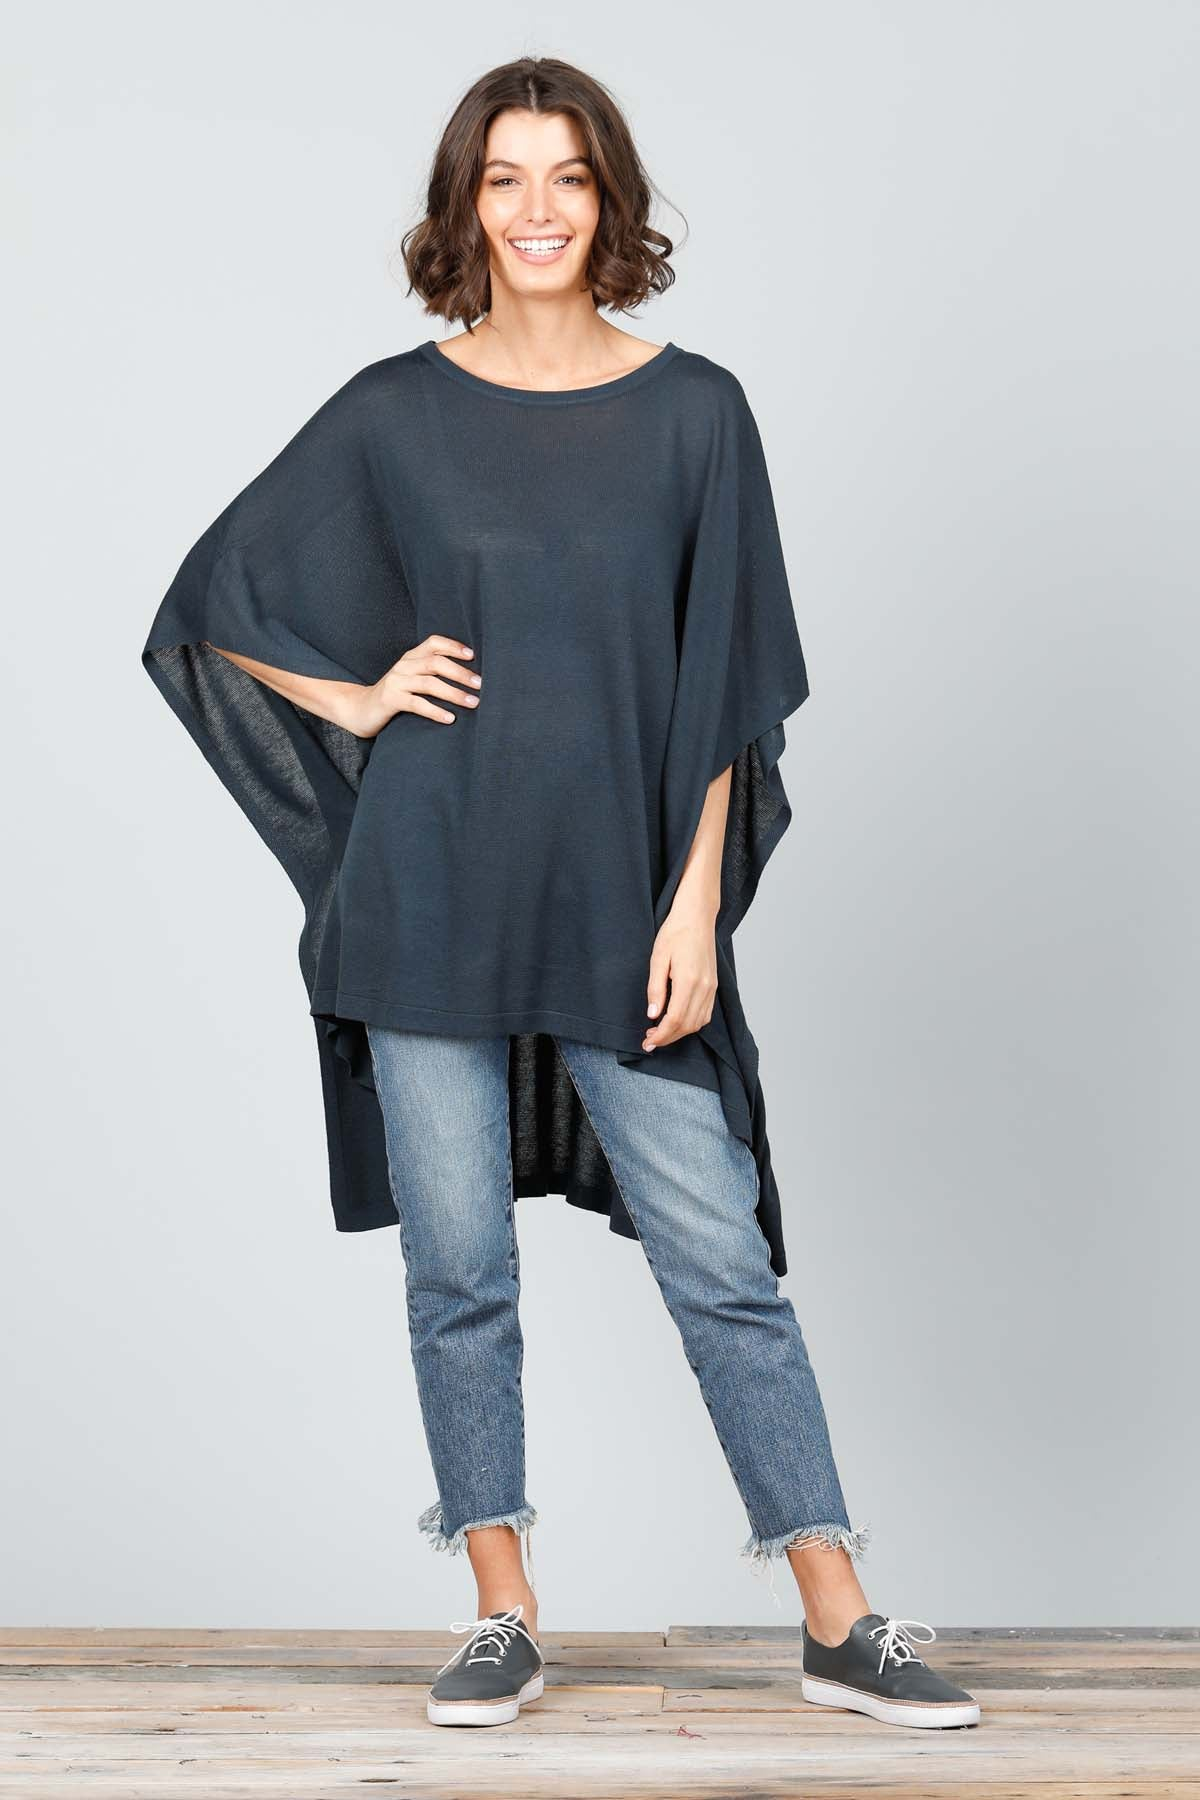 brave+true Vassa Knit Tunic Top